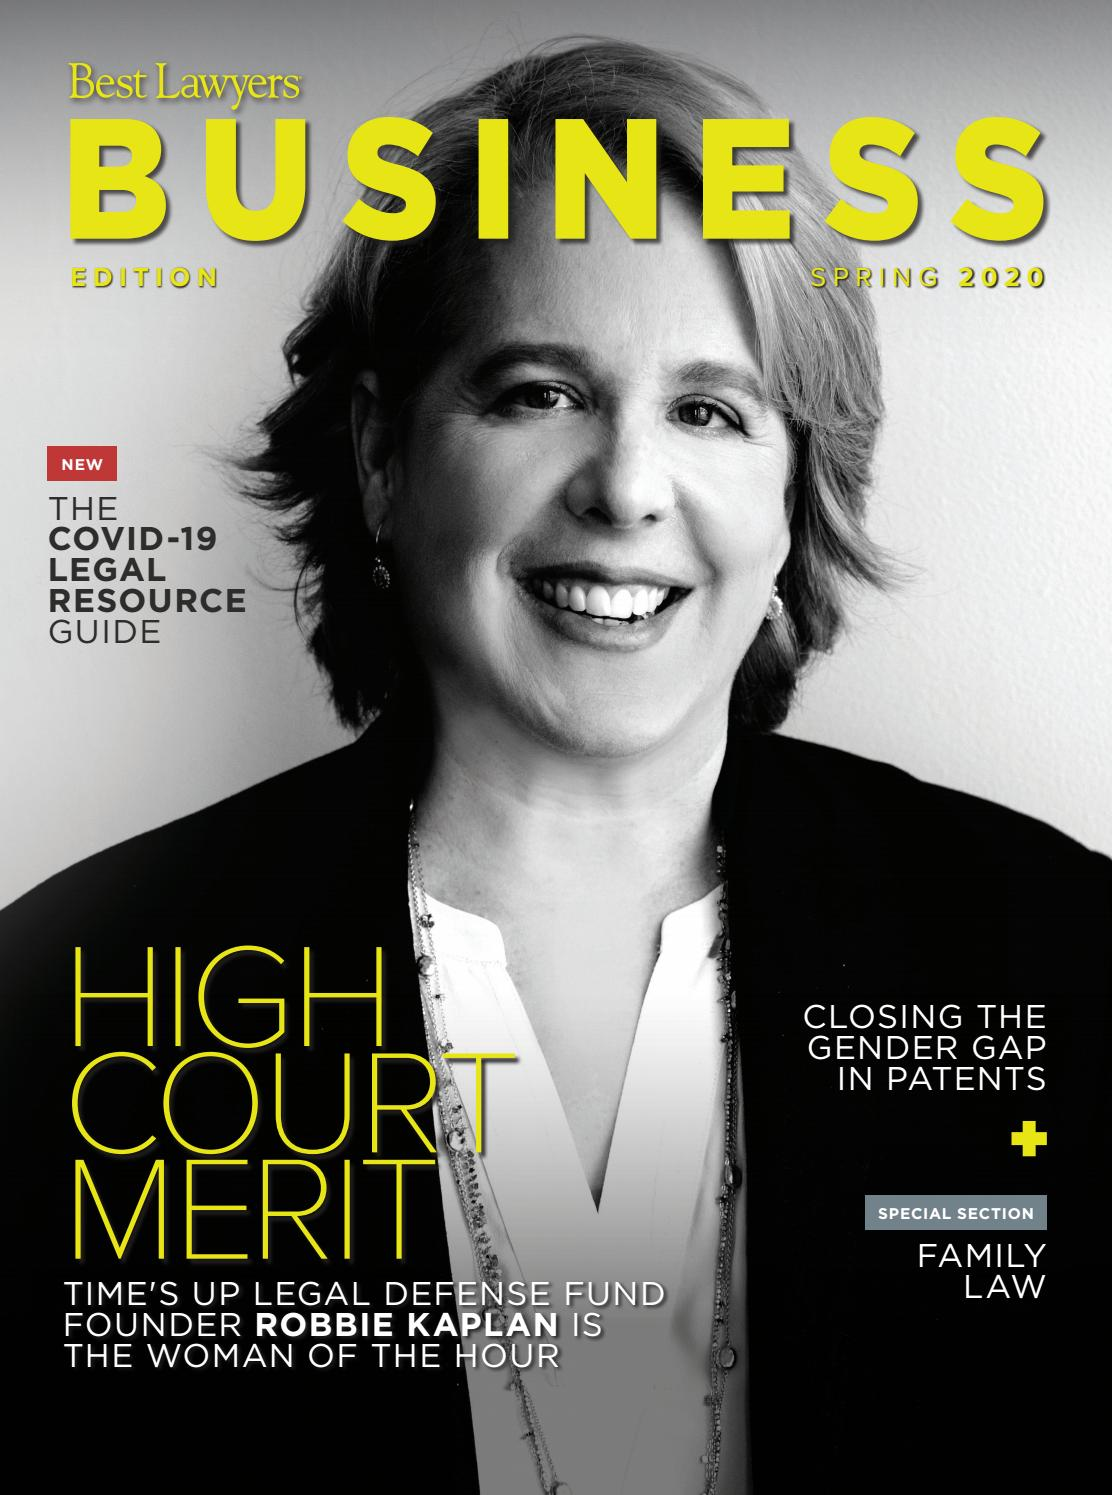 Best Lawyers Spring Business Edition 2020 By Best Lawyers Issuu